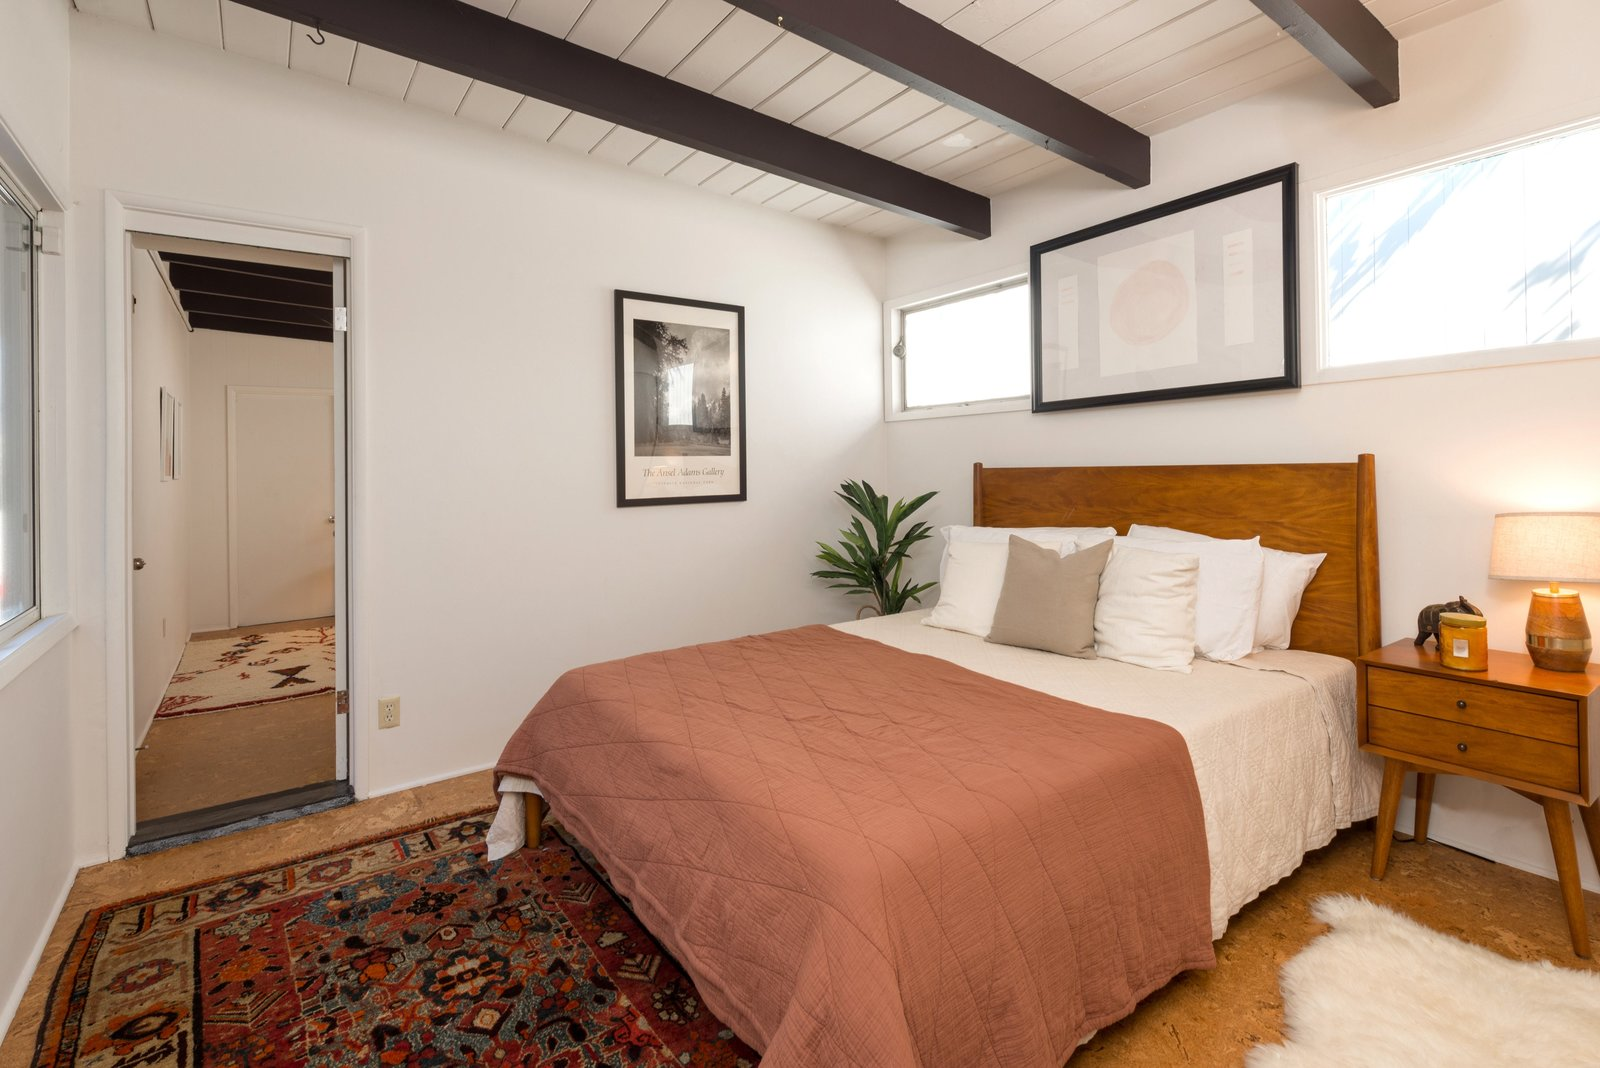 Bedroom, Bed, Table Lighting, Rug Floor, Cork Floor, and Night Stands The home features three bedrooms in a private wing and two full baths.  Photo 12 of 17 in Snag This Hollywood Hills Midcentury Home For $1M